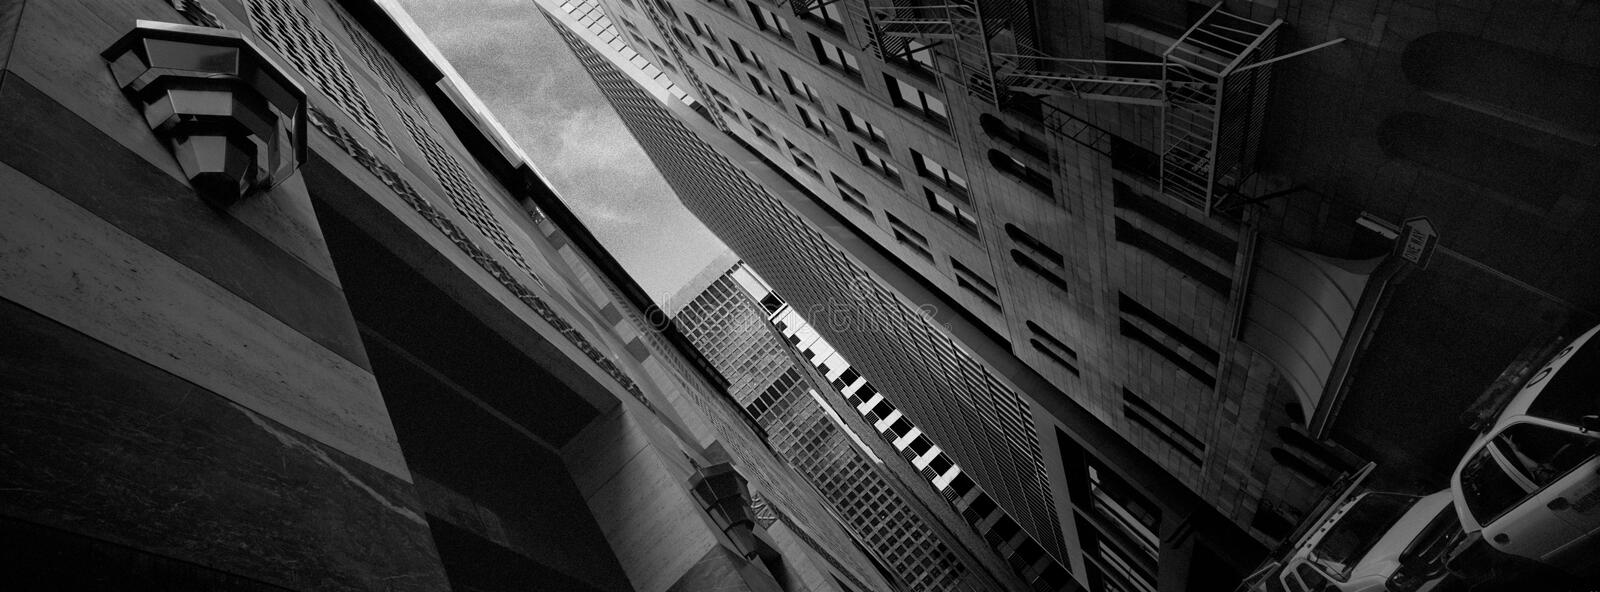 Alley way in downtown Los Angeles, Financial District stock photo